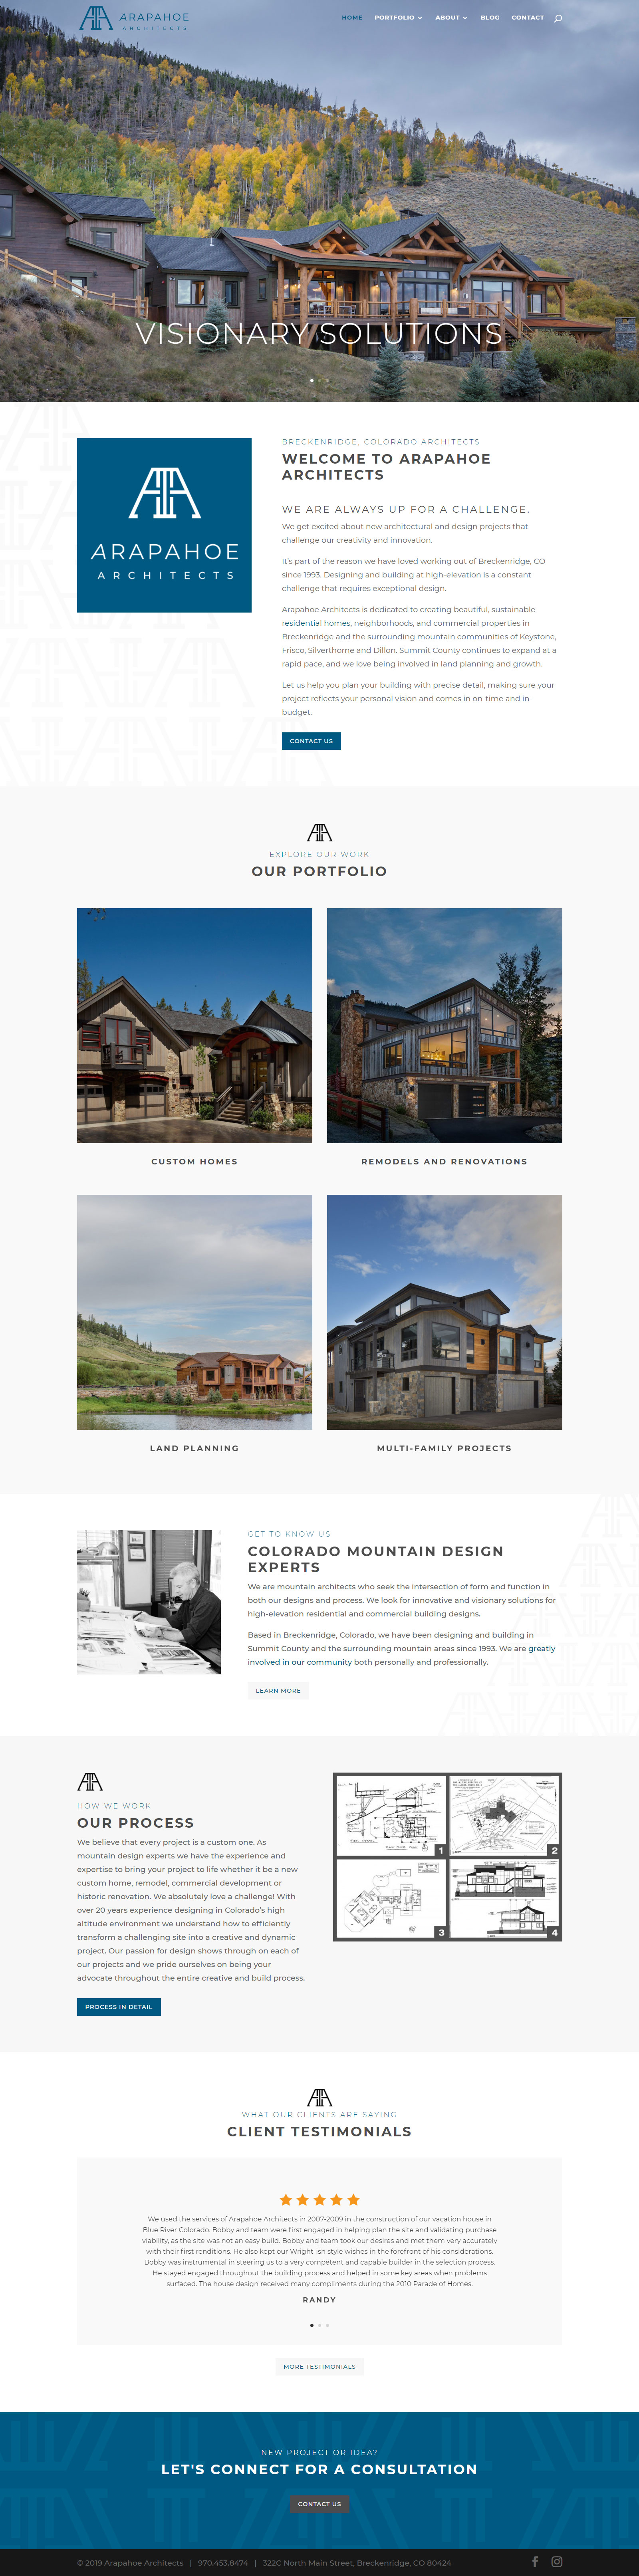 Arapahoe Architects - Catering to New Architectural and Design Projects